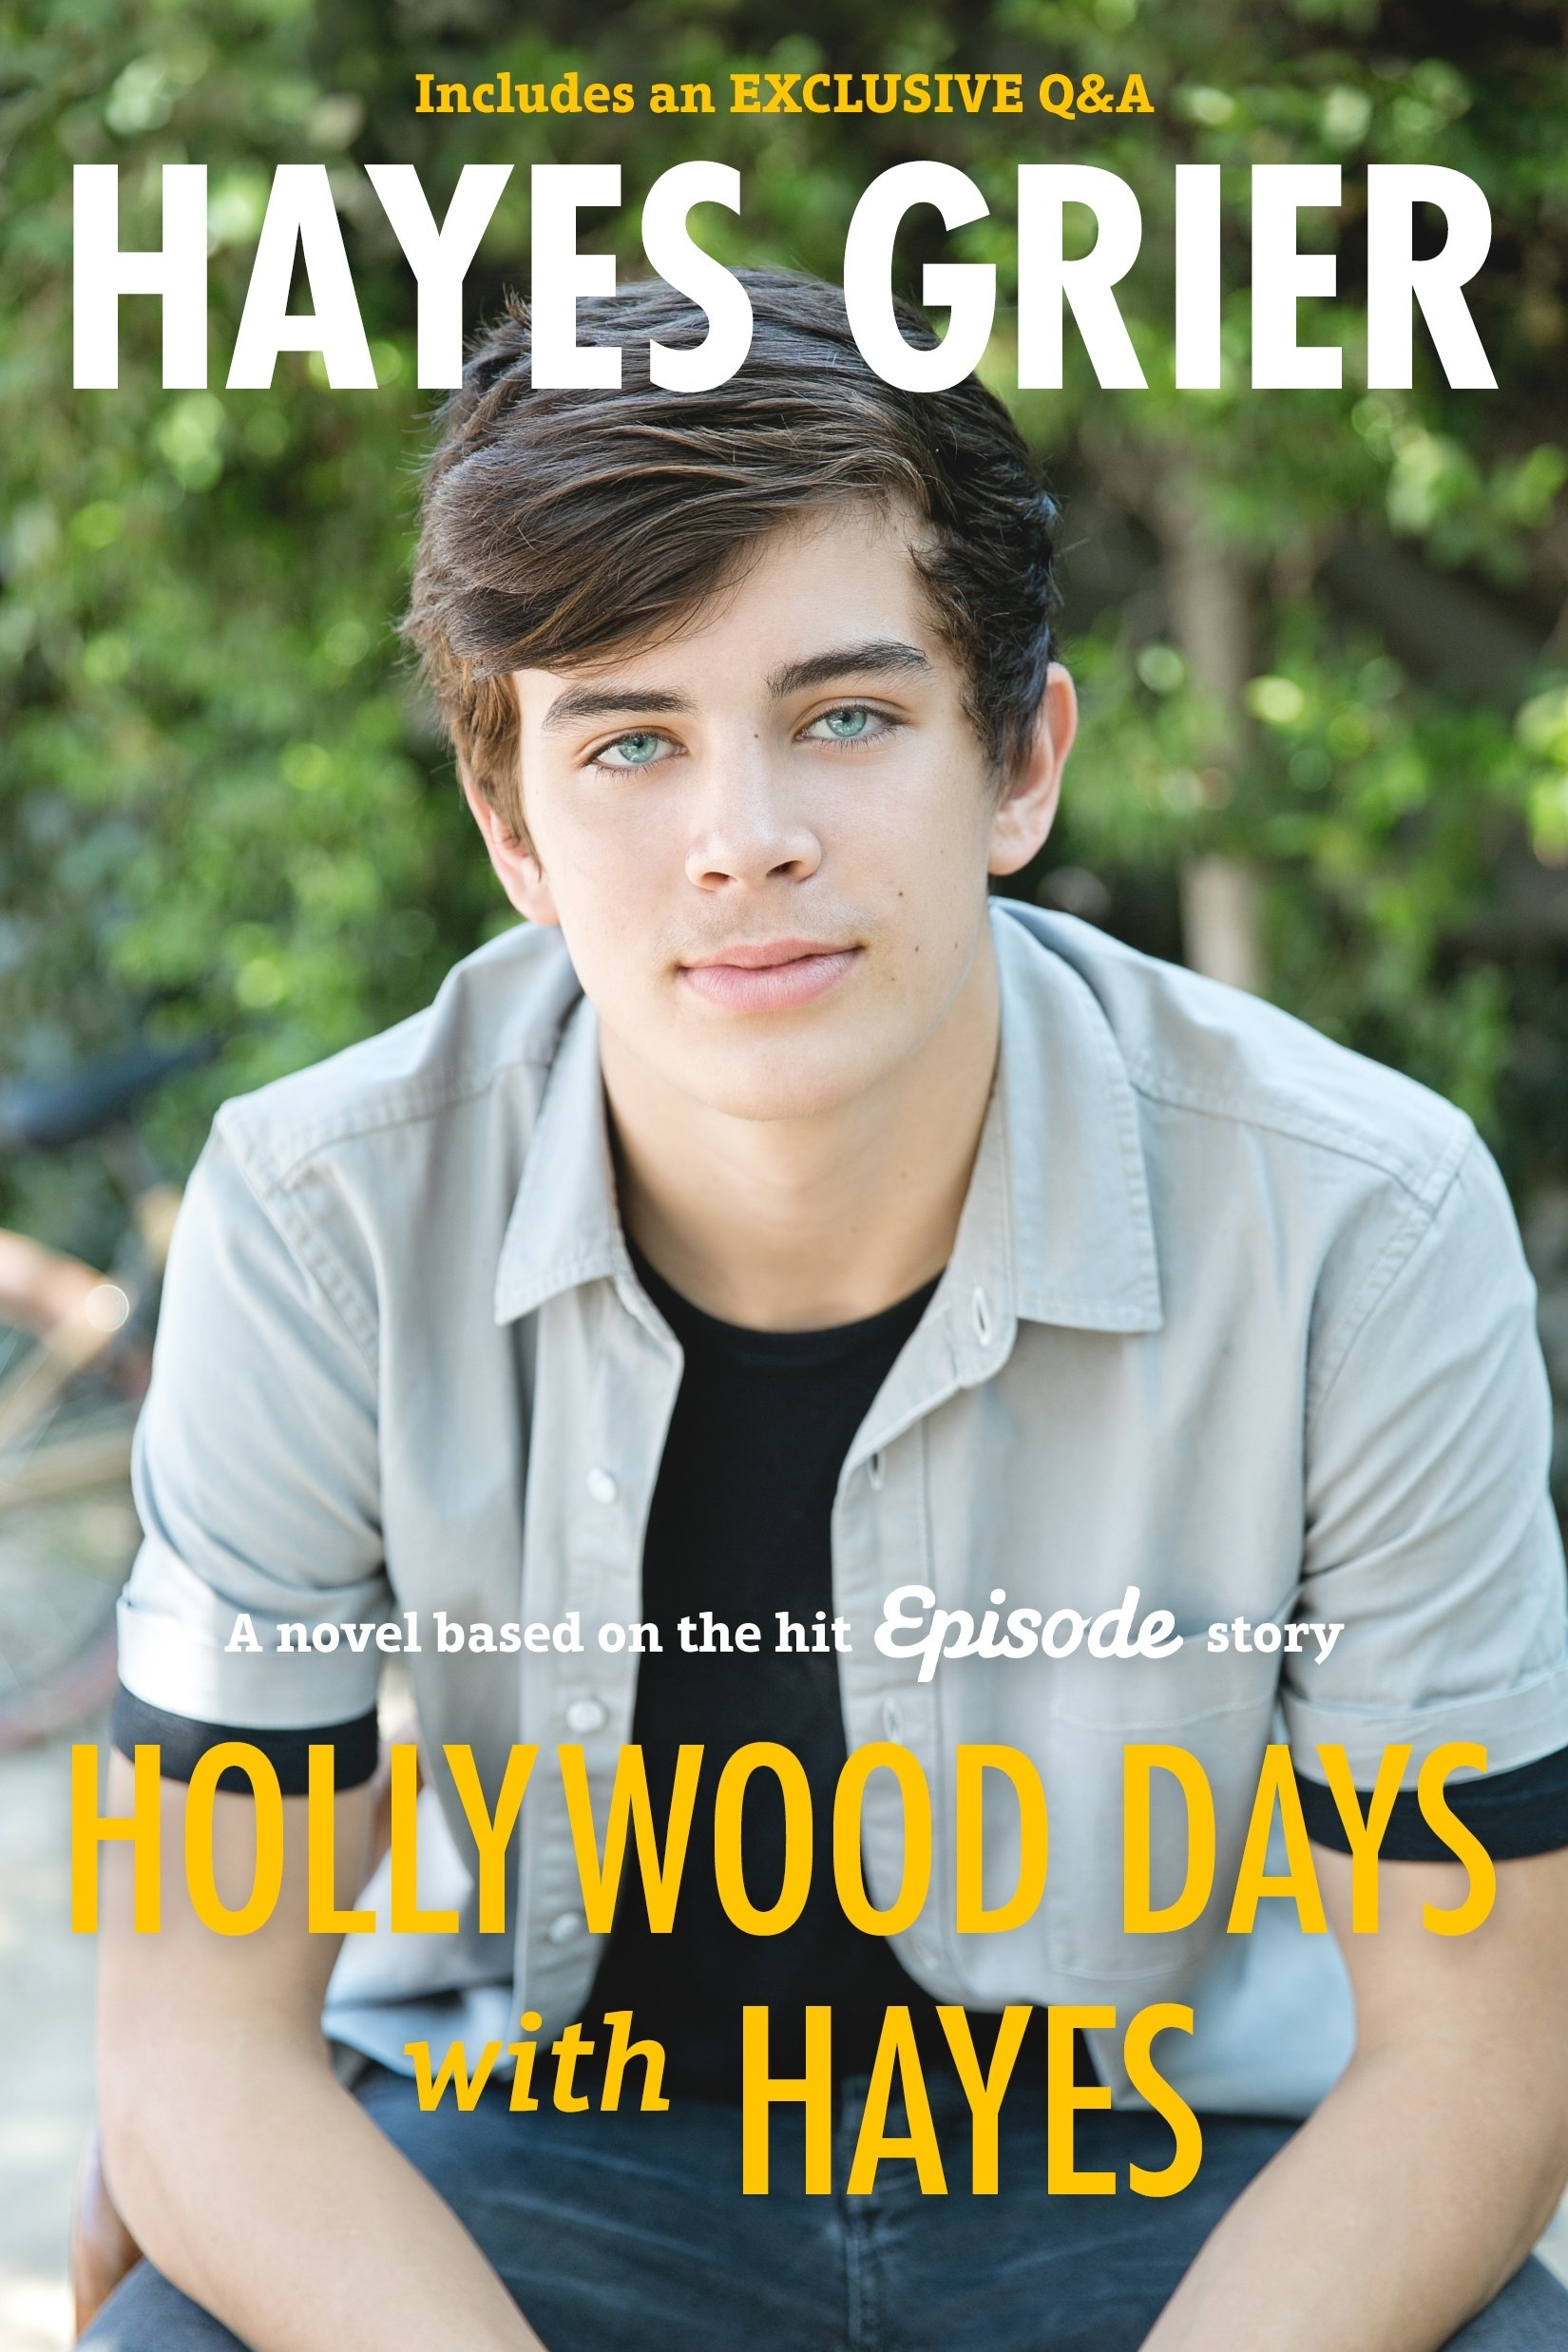 Hollywood Days with Hayes (Anglais) Broché – 15 novembre 2016 HAYES GRIER St Martin's Press 1250138310 Anglais loisir